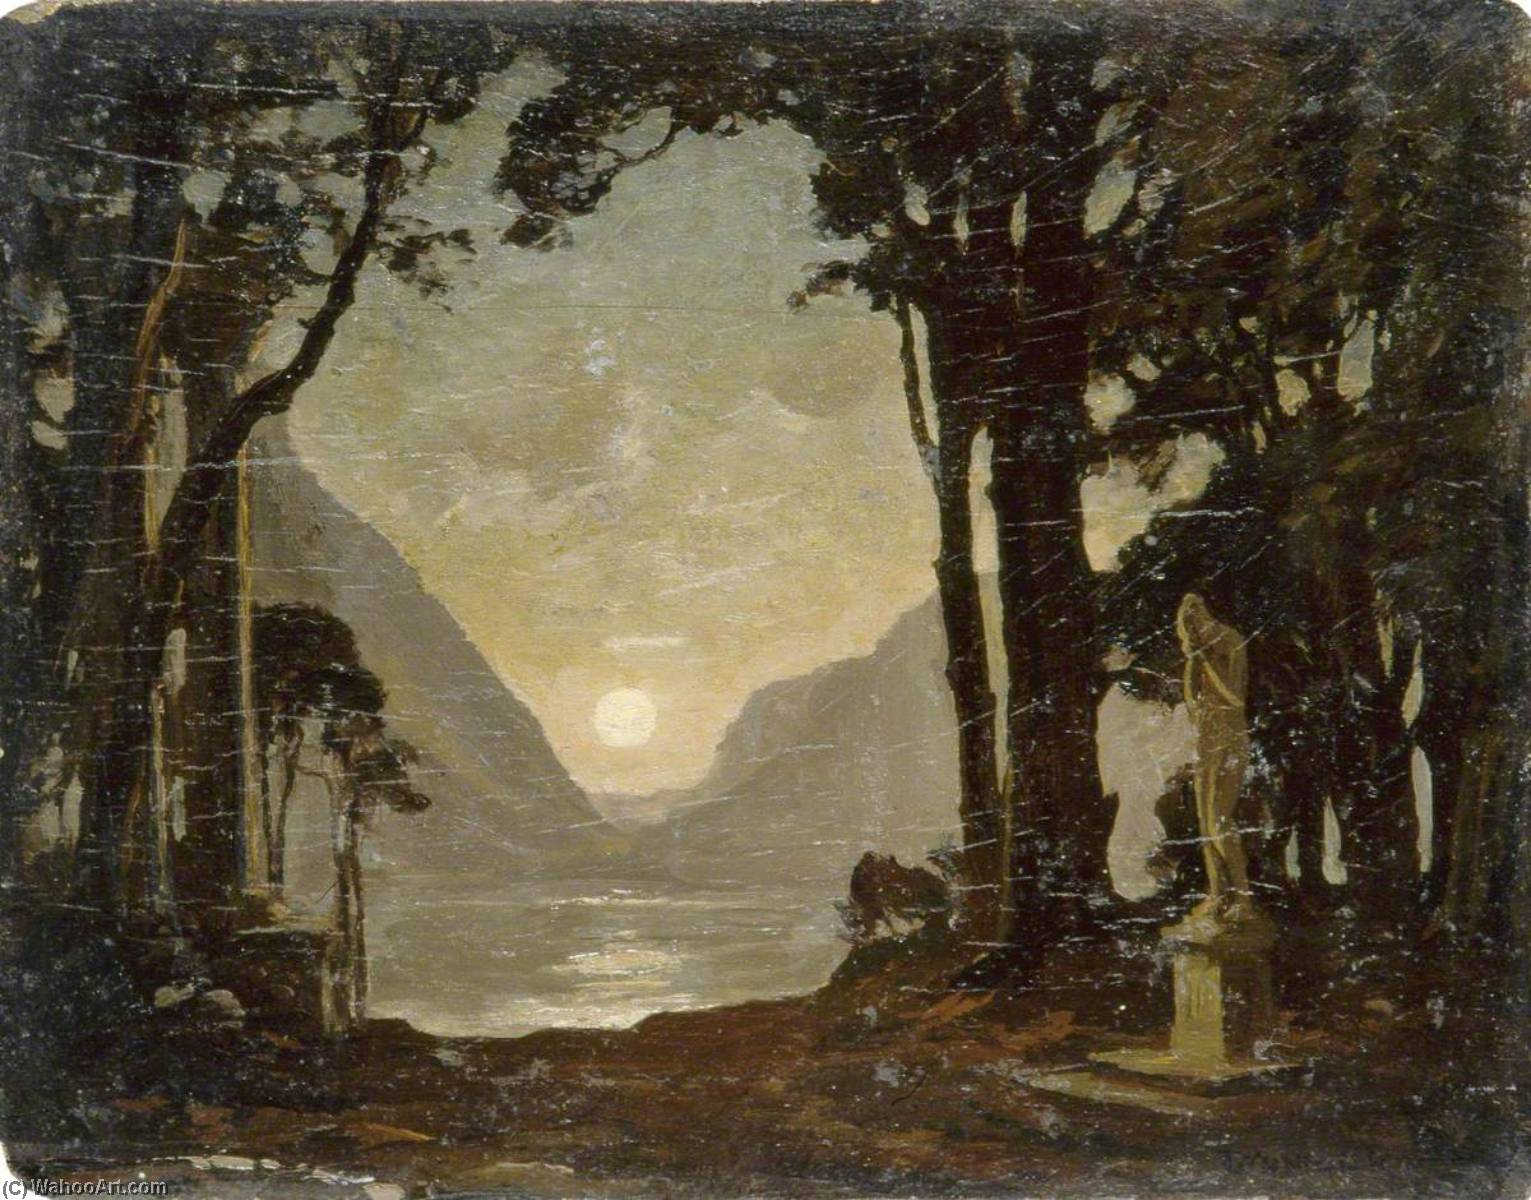 Moonlight on a Lake with Statues, Oil by Gunning King